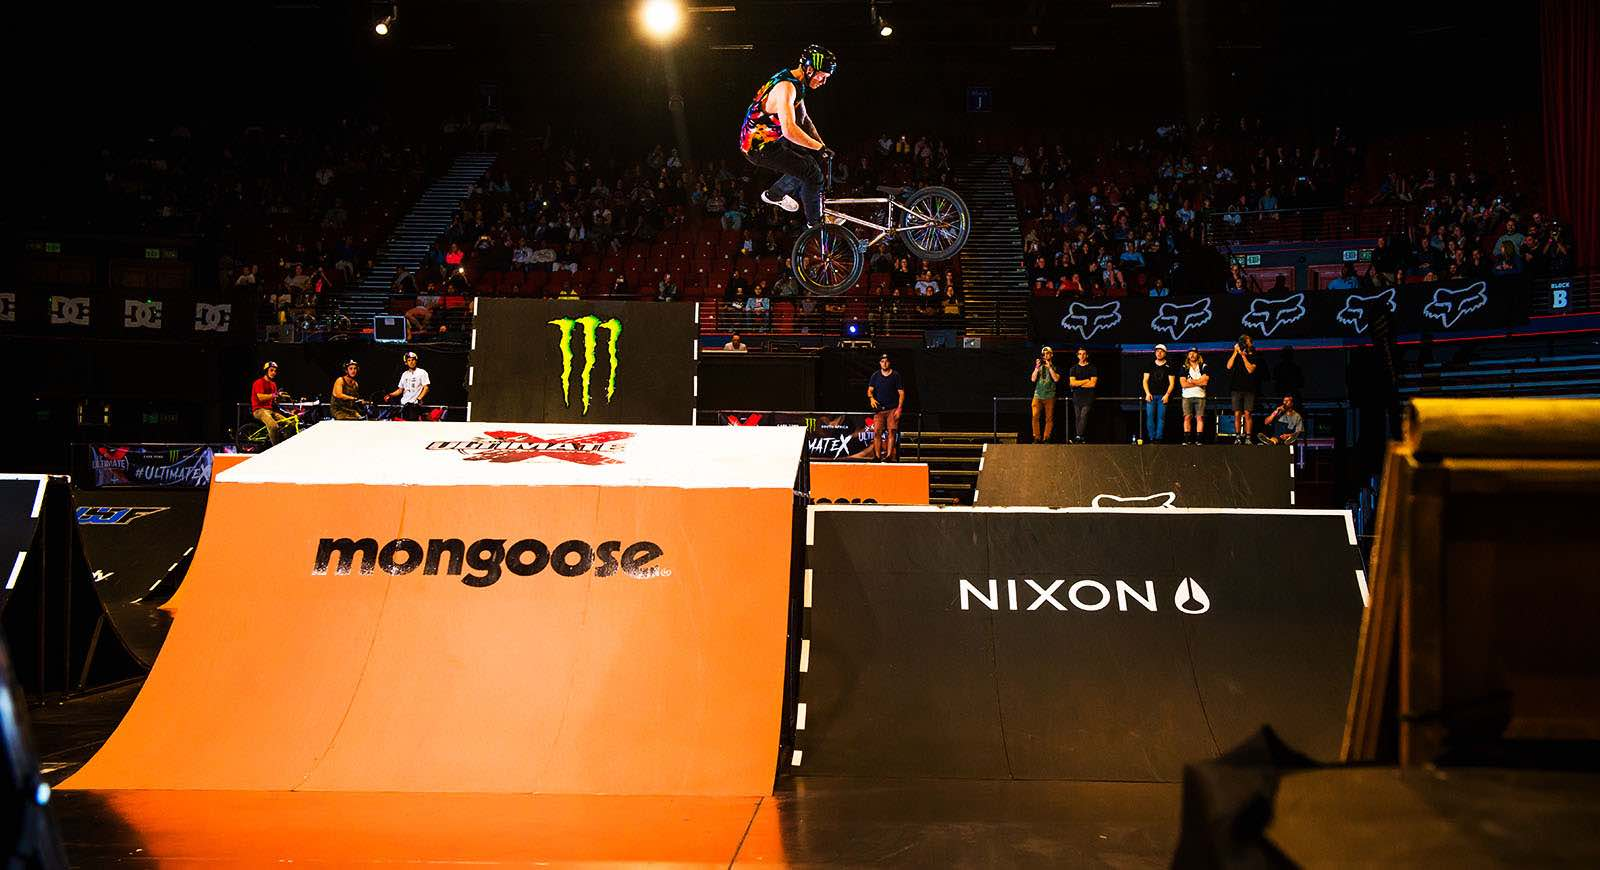 Brock Horneman riding his way to victory at the Ultimate X 2017 BMX contest